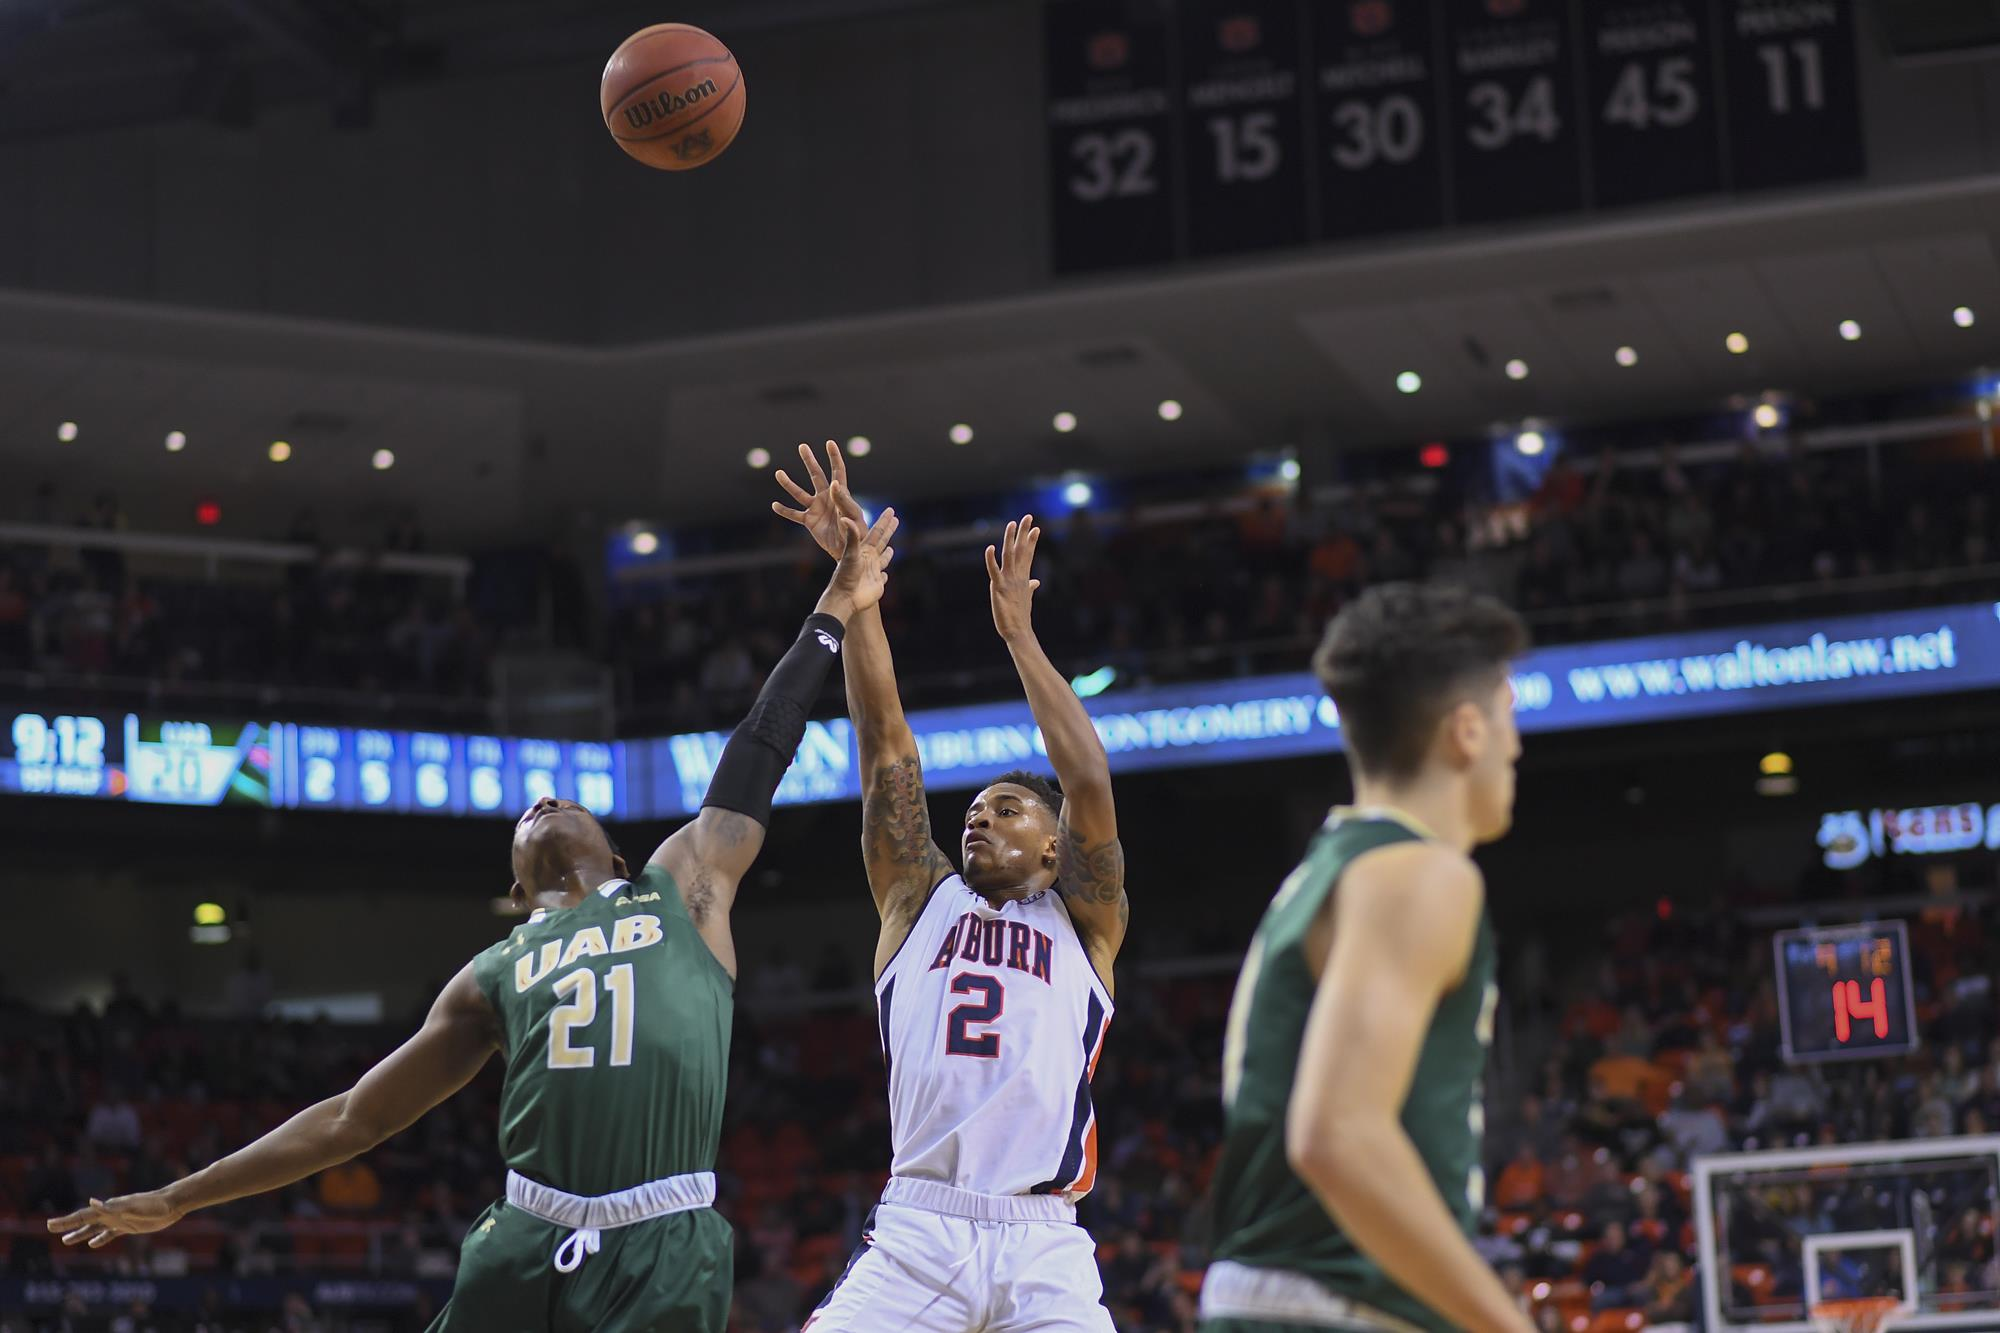 in-state battle: no. 8 auburn expects physical test from uab